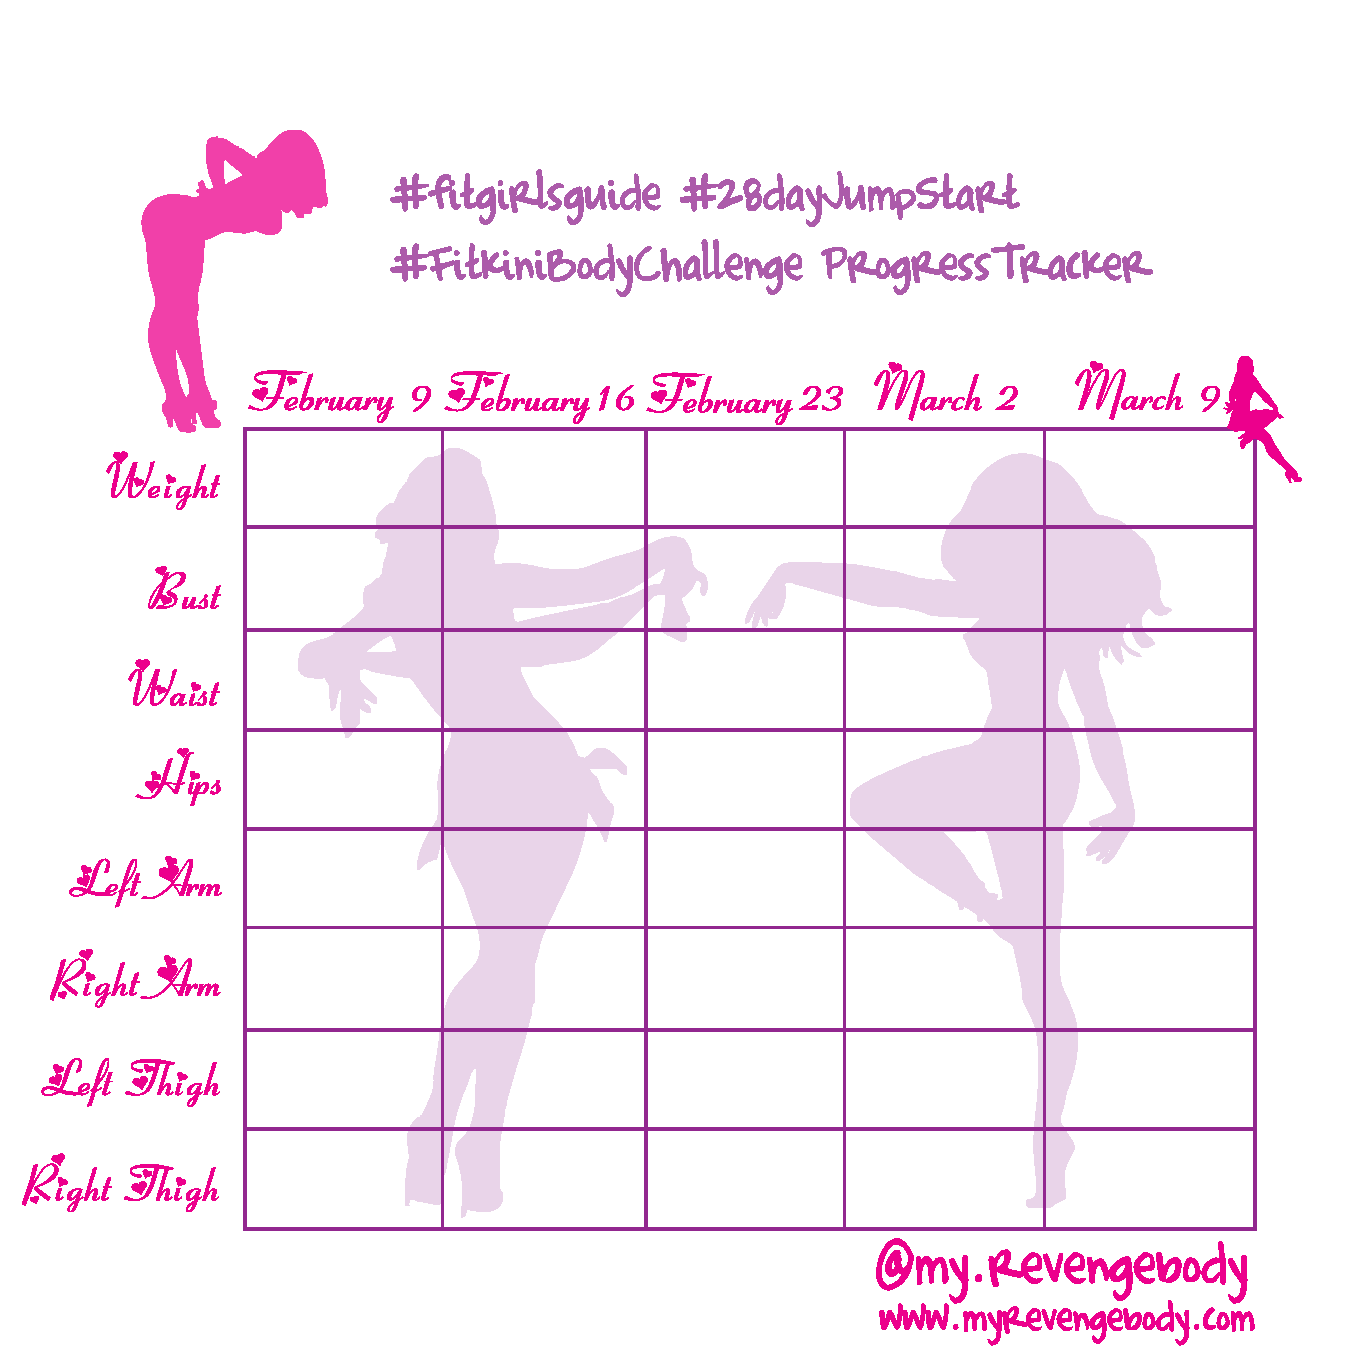 FitgirlTrackerFebruary.png 1,363×1,363 pixels